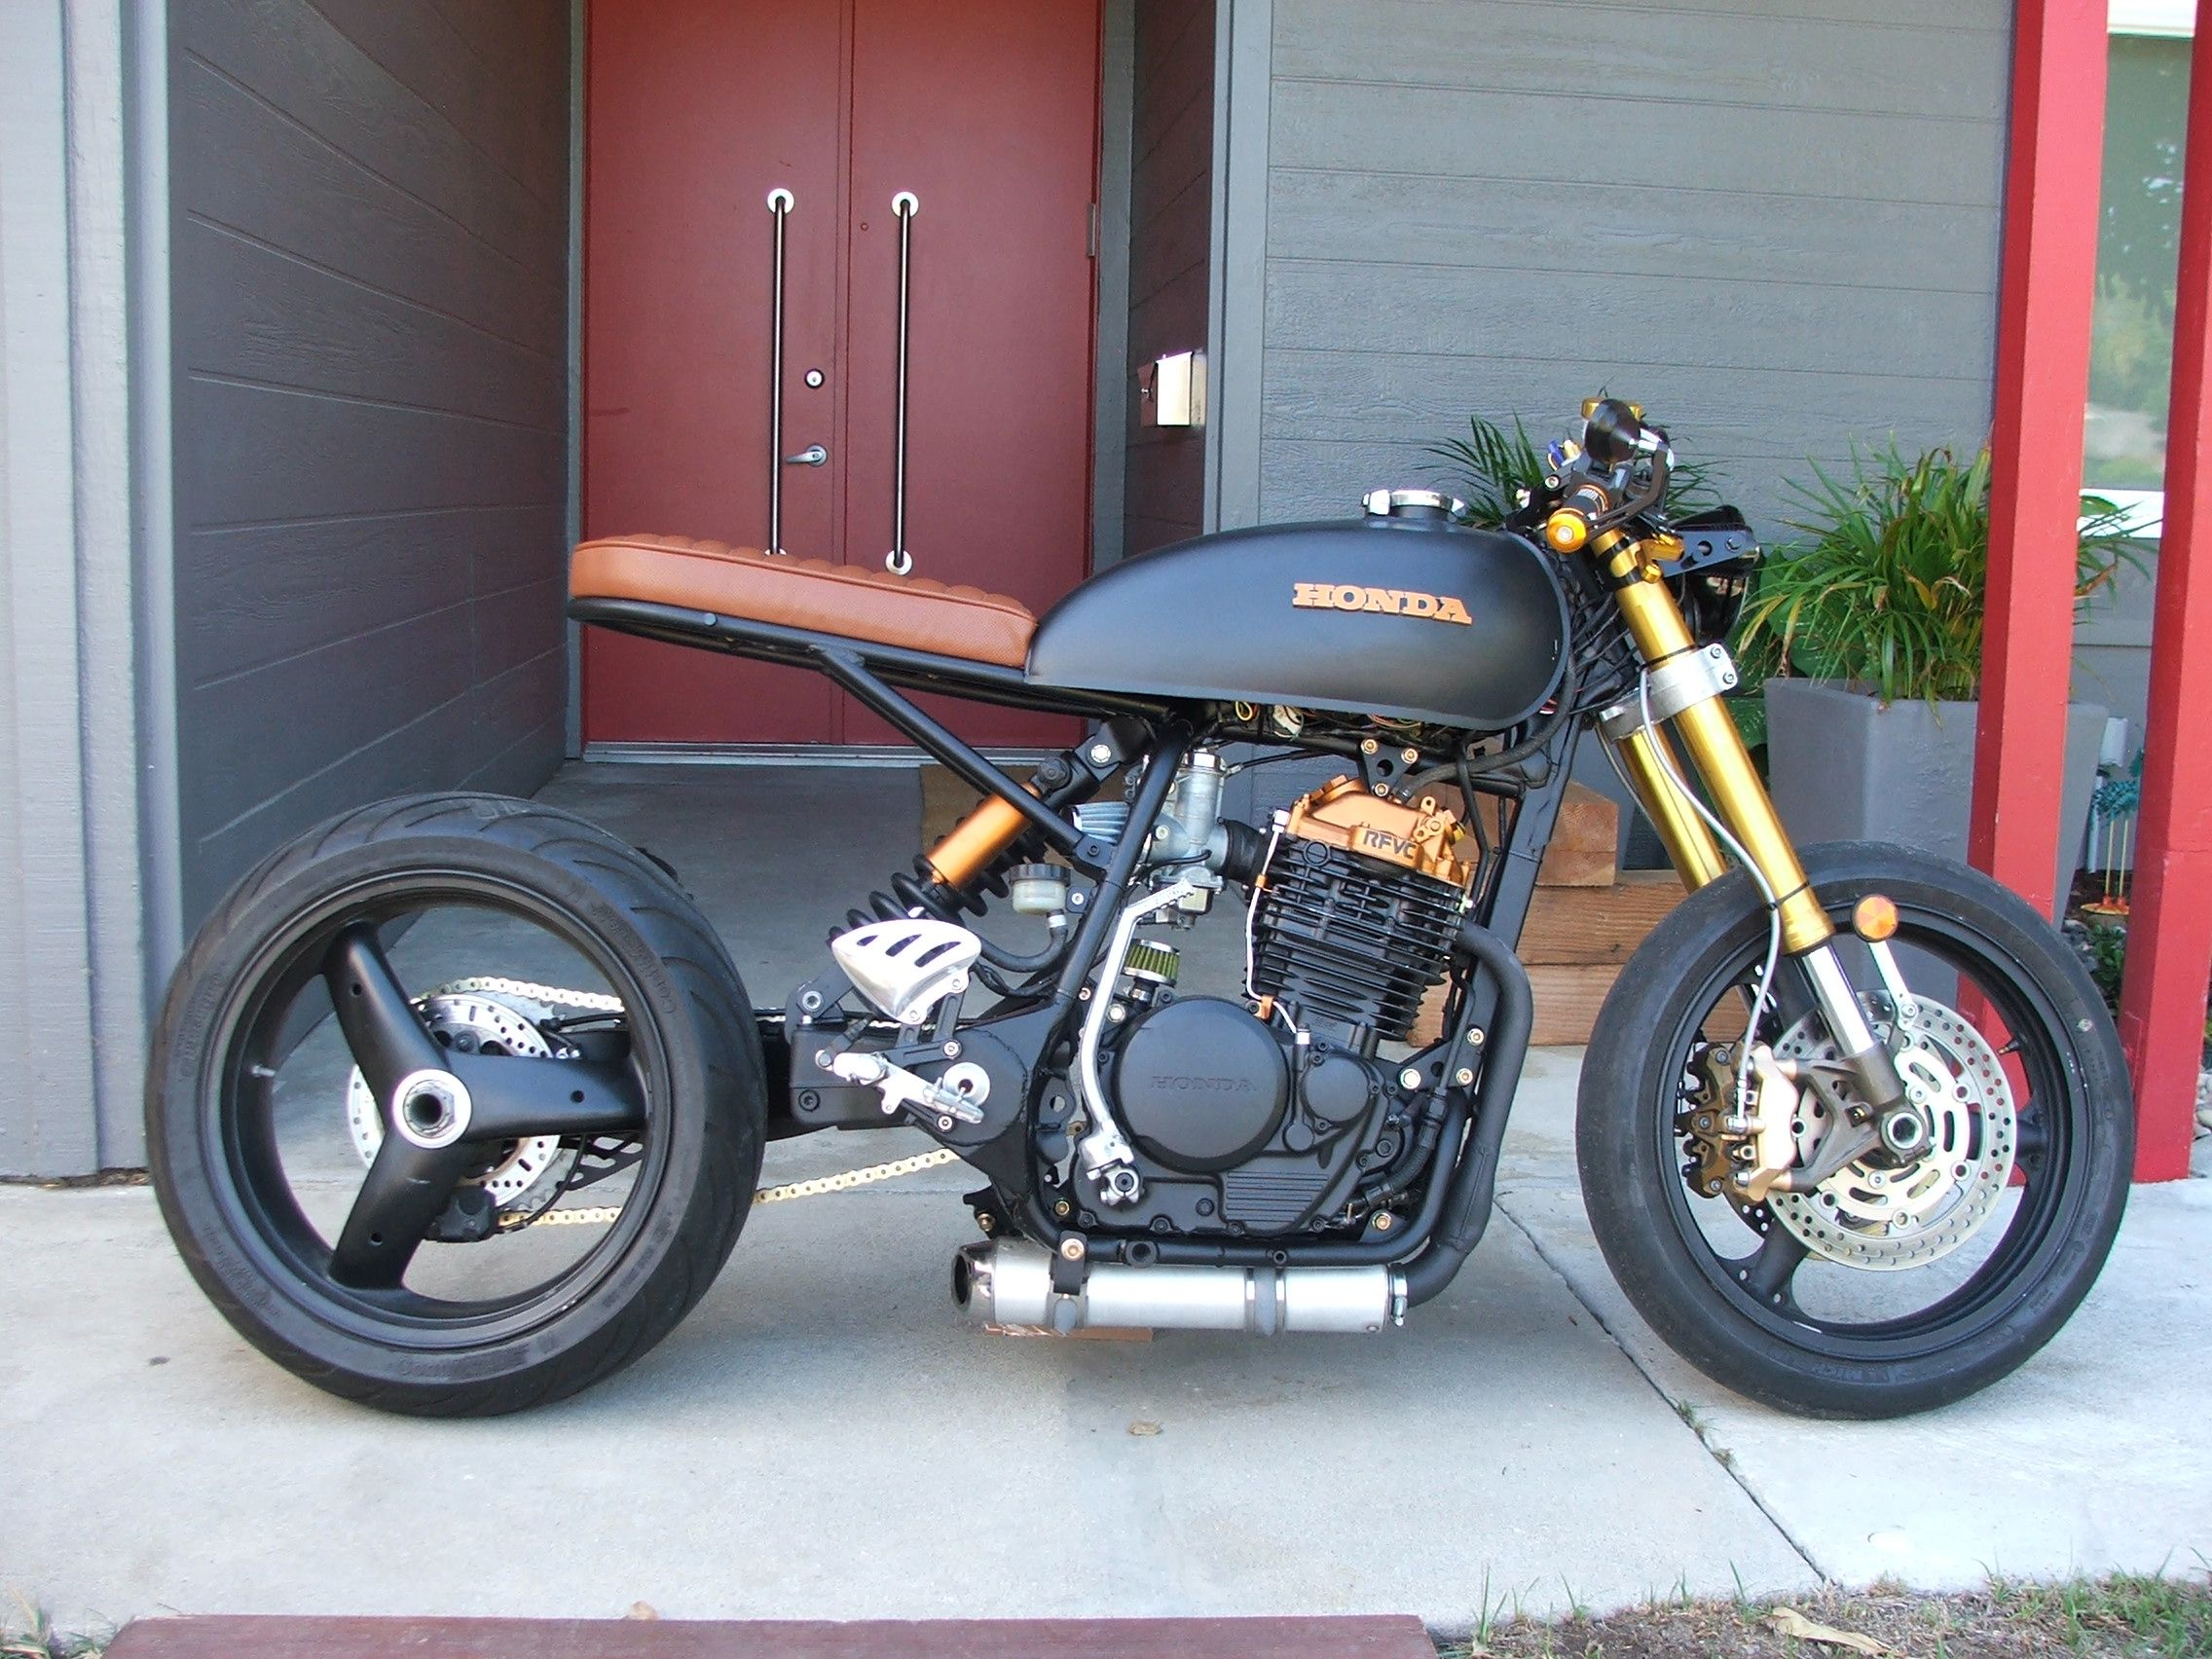 honda xr600r #caferacer | caferacerpasion | cafe racer